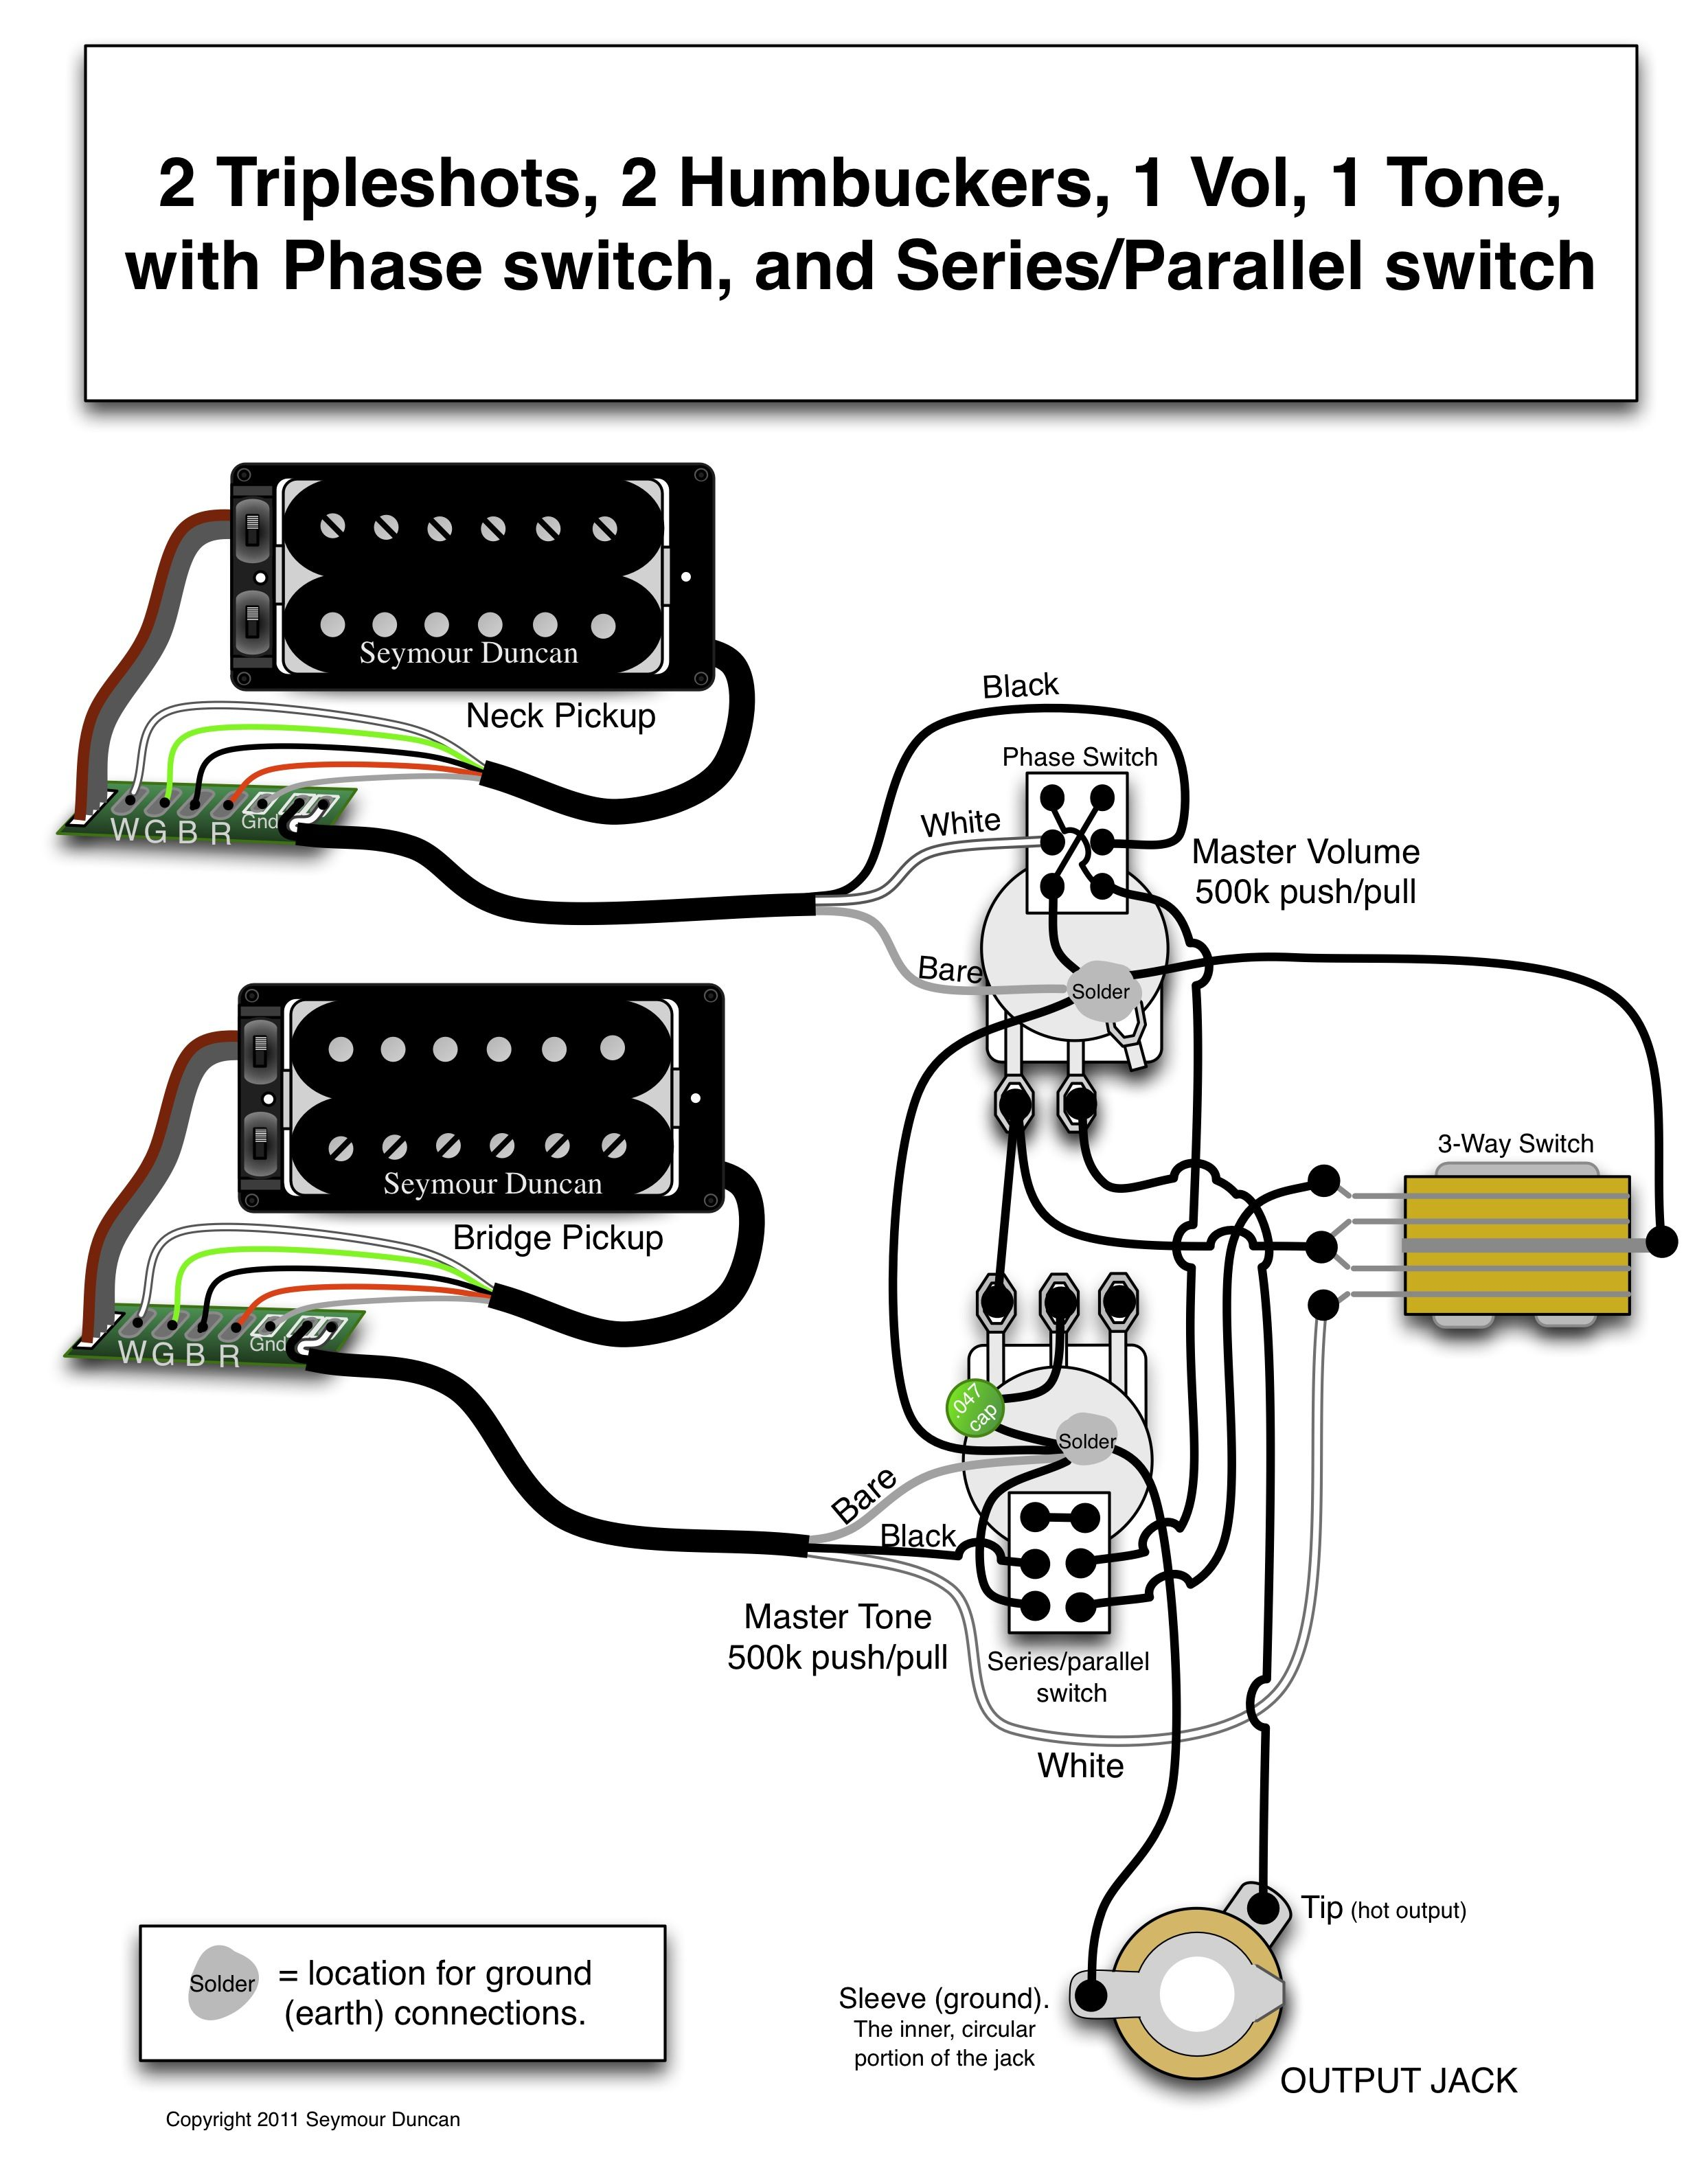 Seymour duncan wiring diagram 2 triple shots 2 humbuckers 1 vol seymour duncan wiring diagram 2 triple shots 2 humbuckers 1 vol with phase switch 1 tone with seriesparallel switch asfbconference2016 Image collections